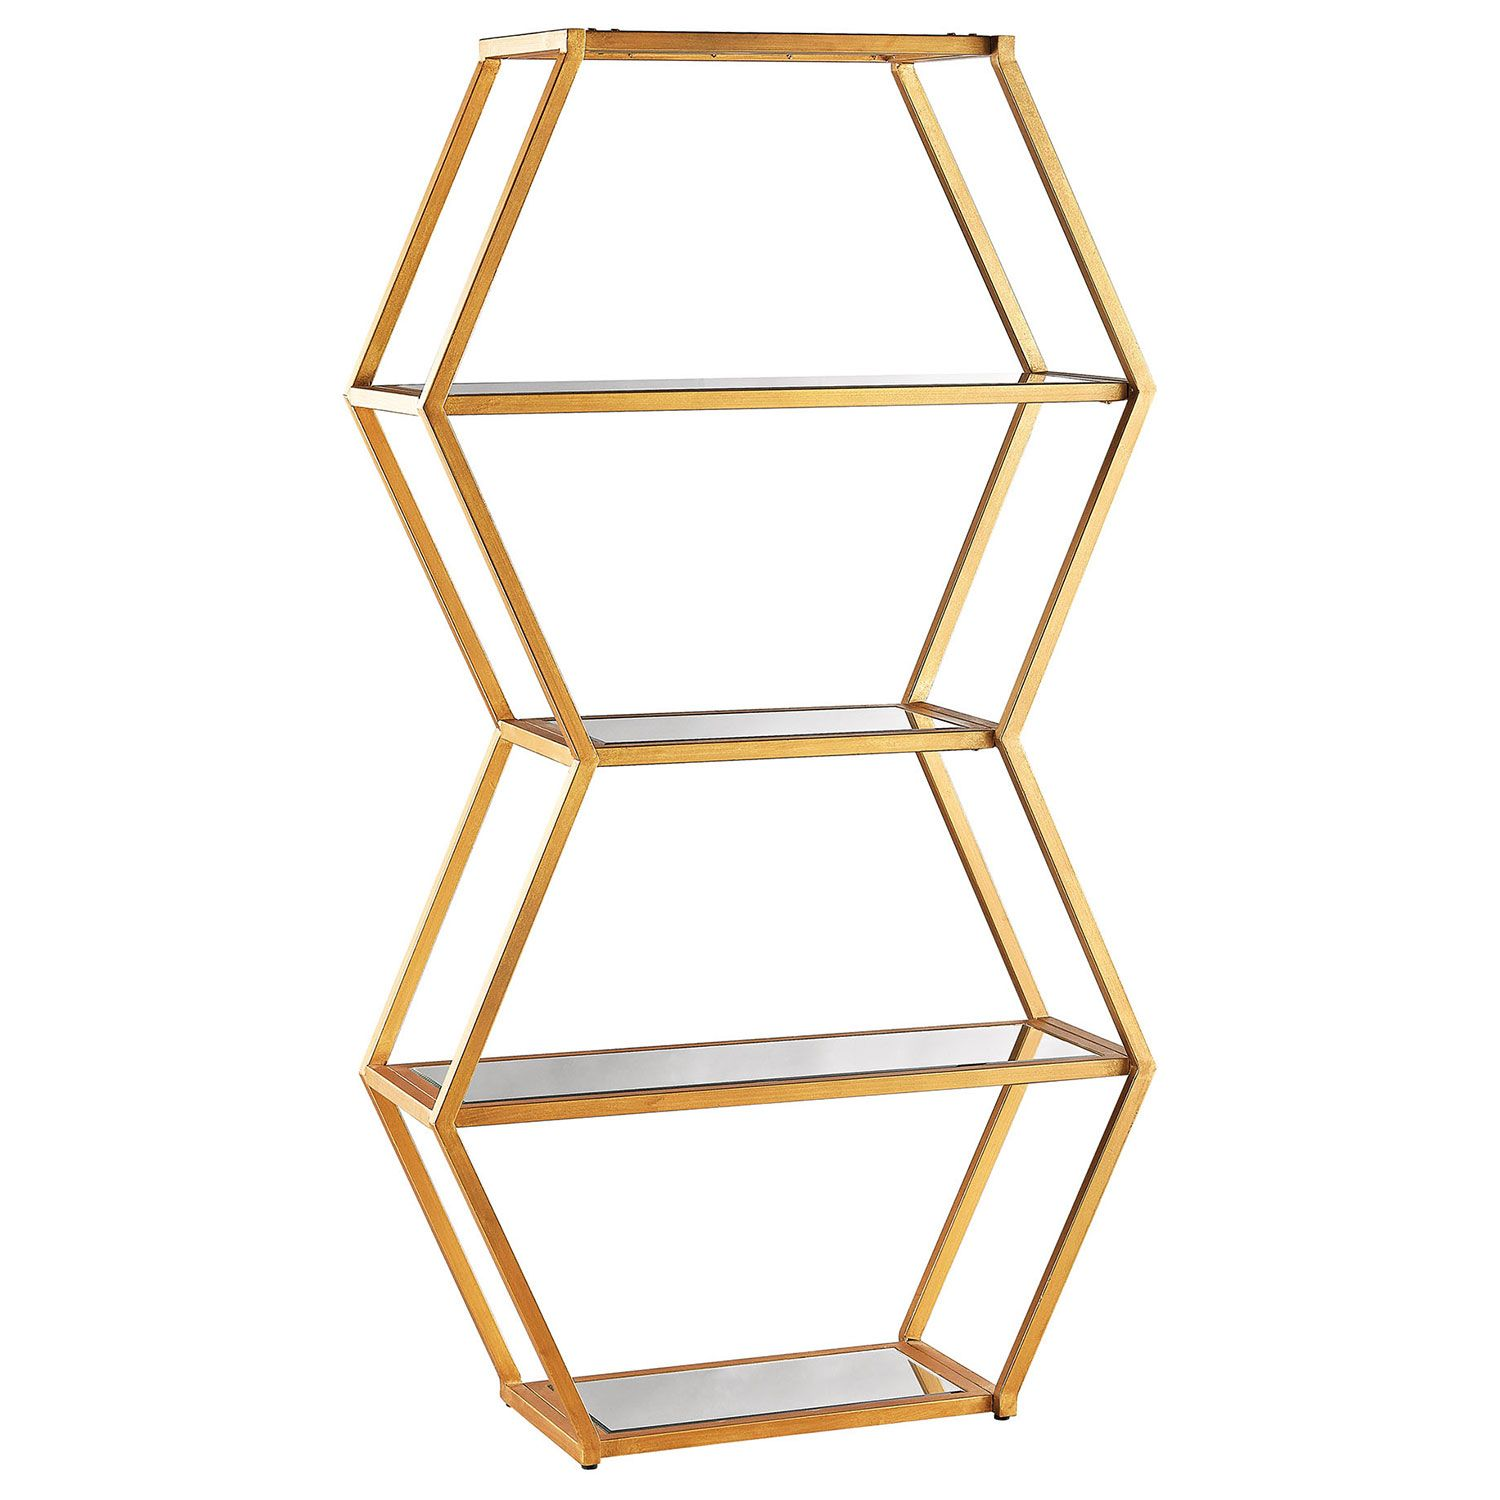 Pin by melissa bloom hairstylist on shelves ladders